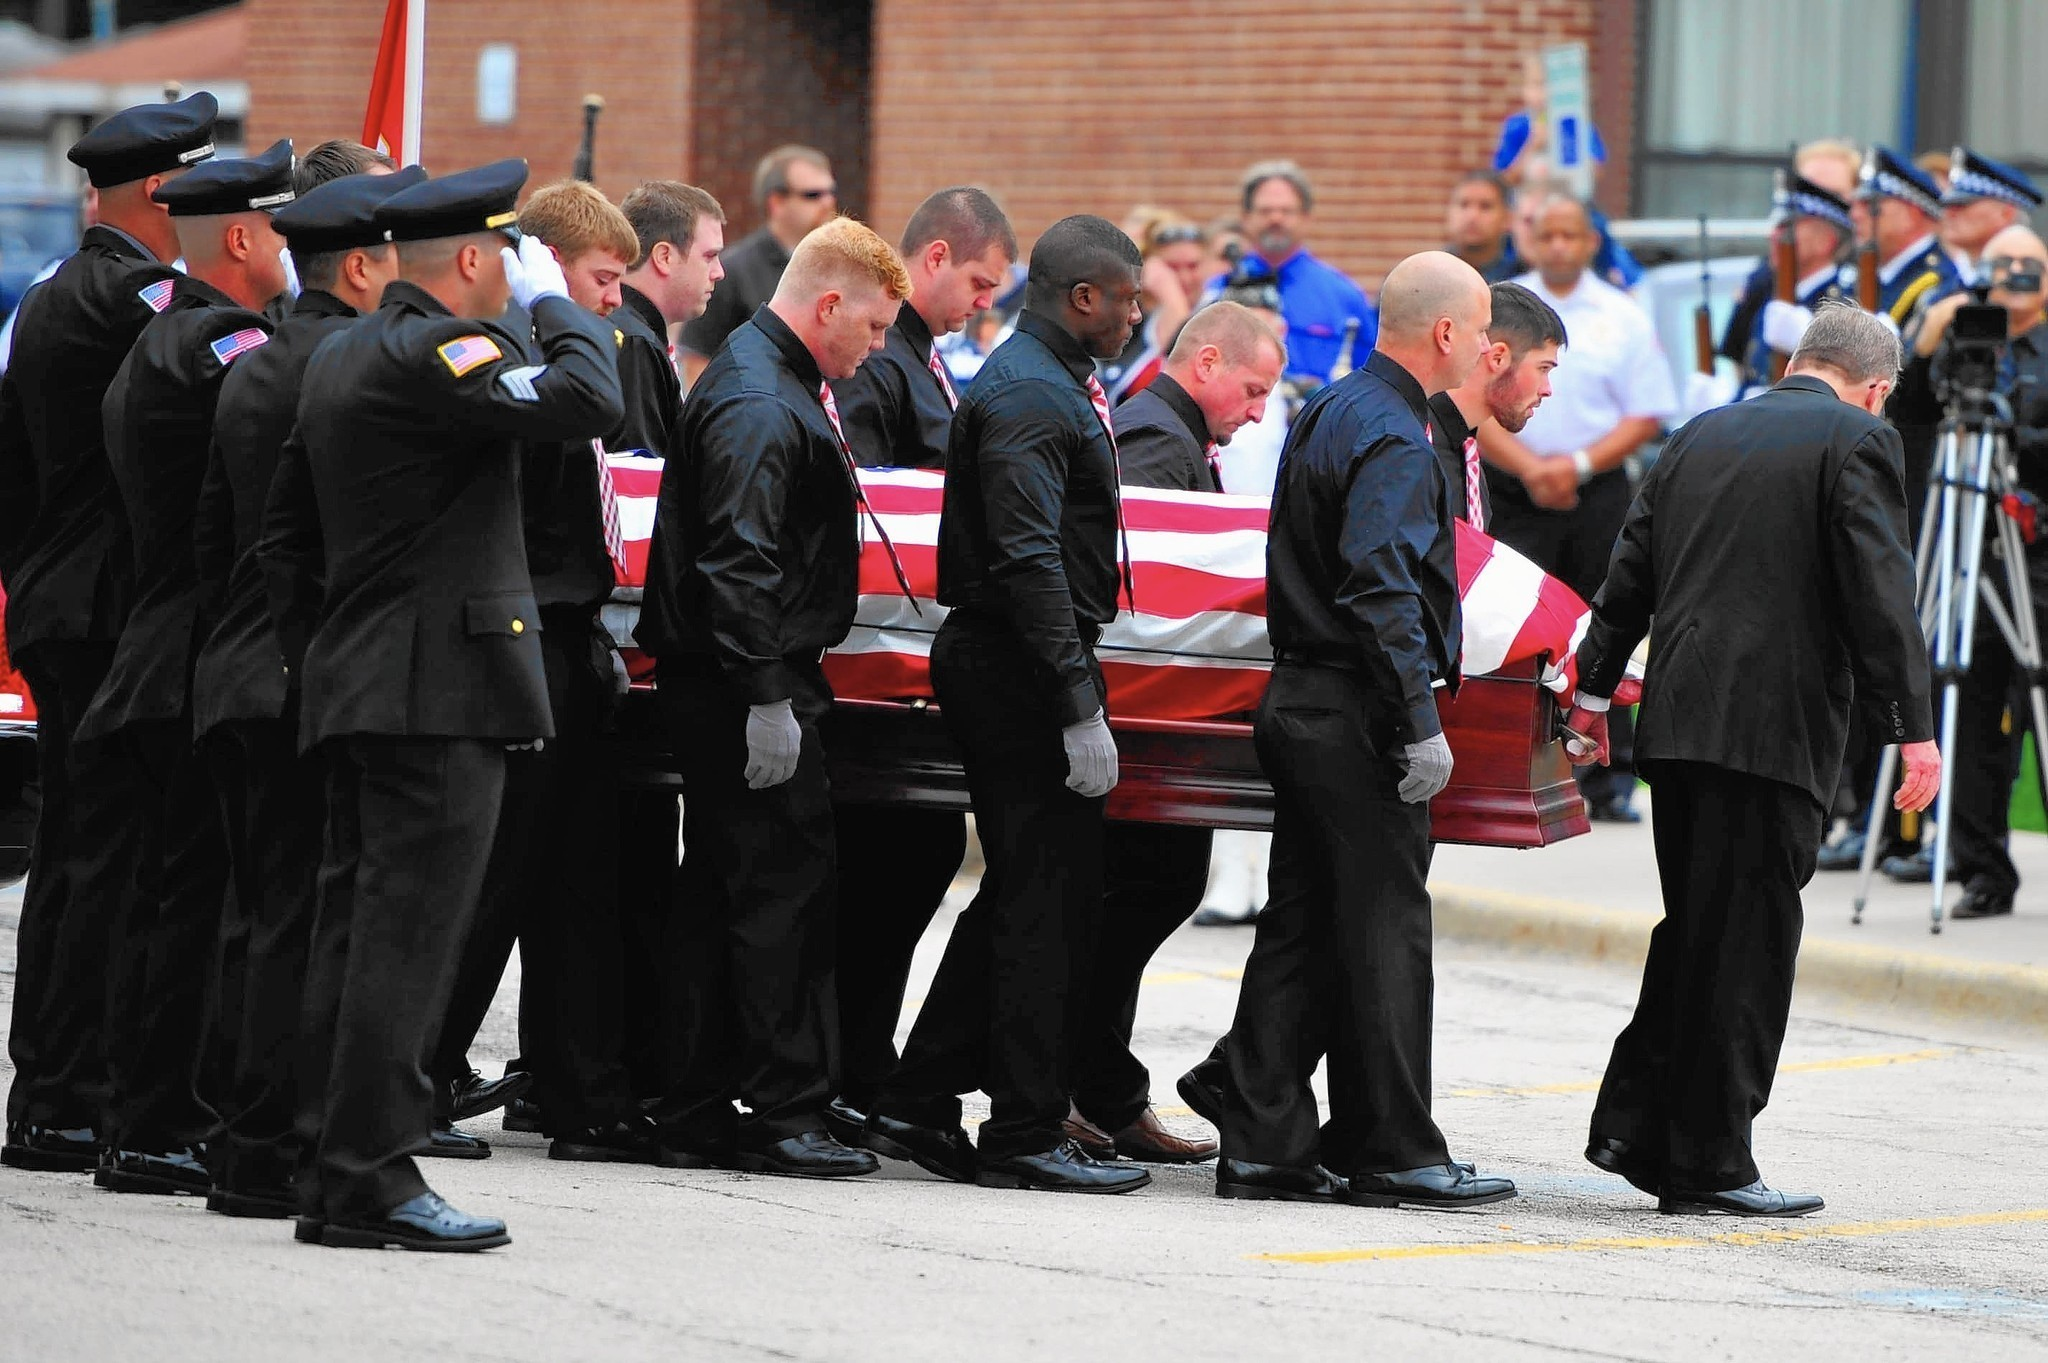 Chicago Ridge says good bye to officer killed in off duty crash